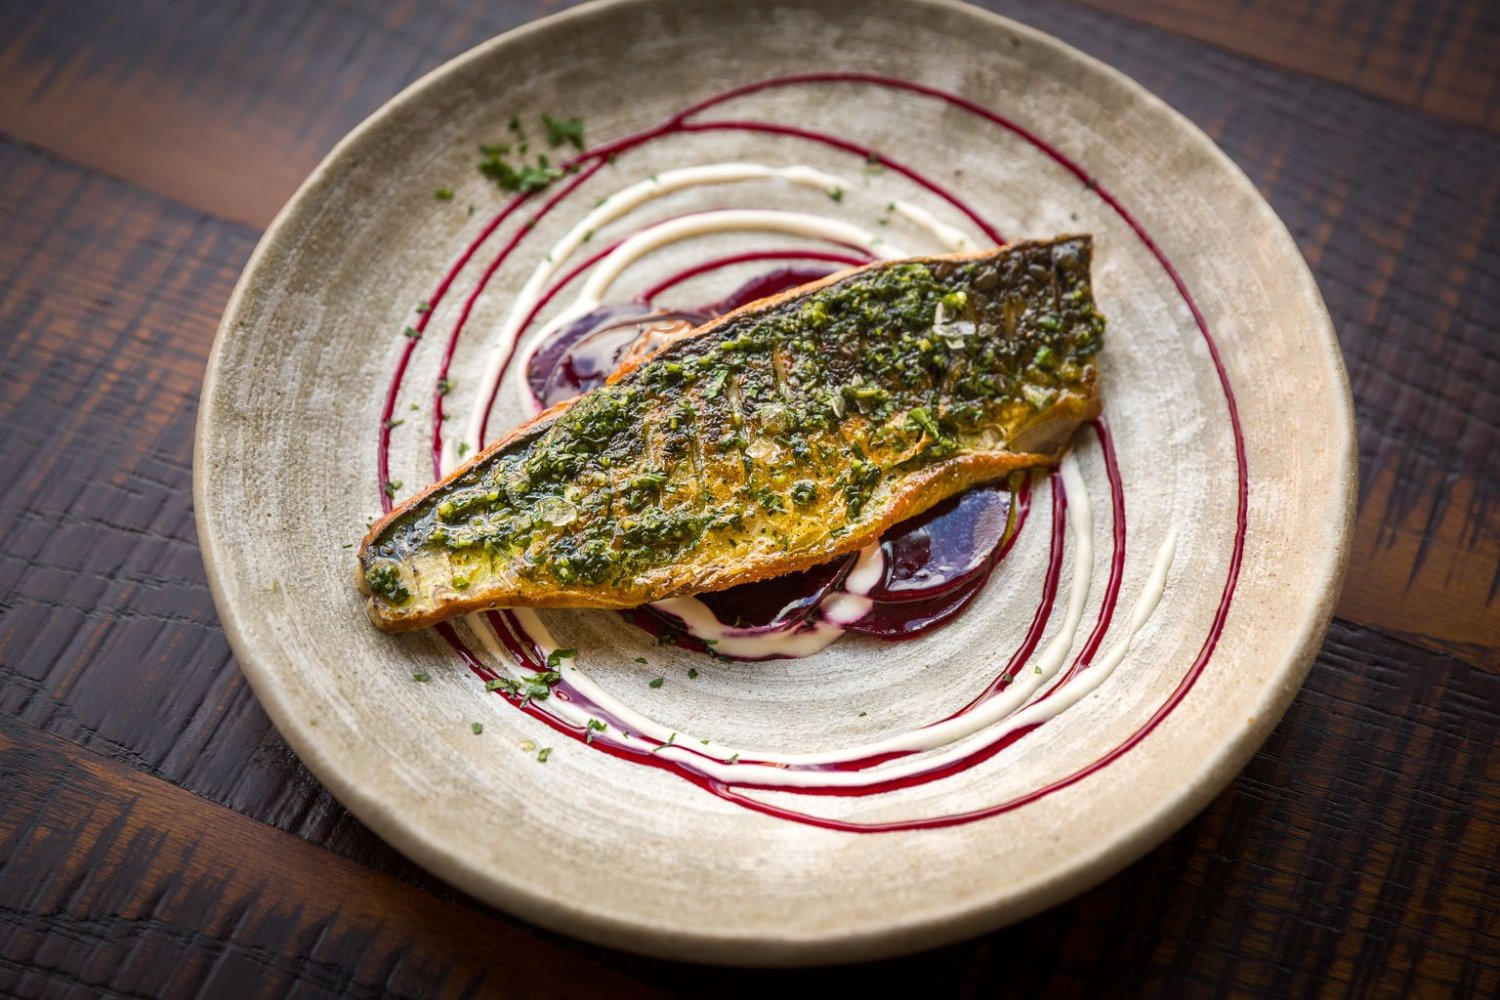 Grilled mackerel fillet with beetroot salad, horseradish dressing